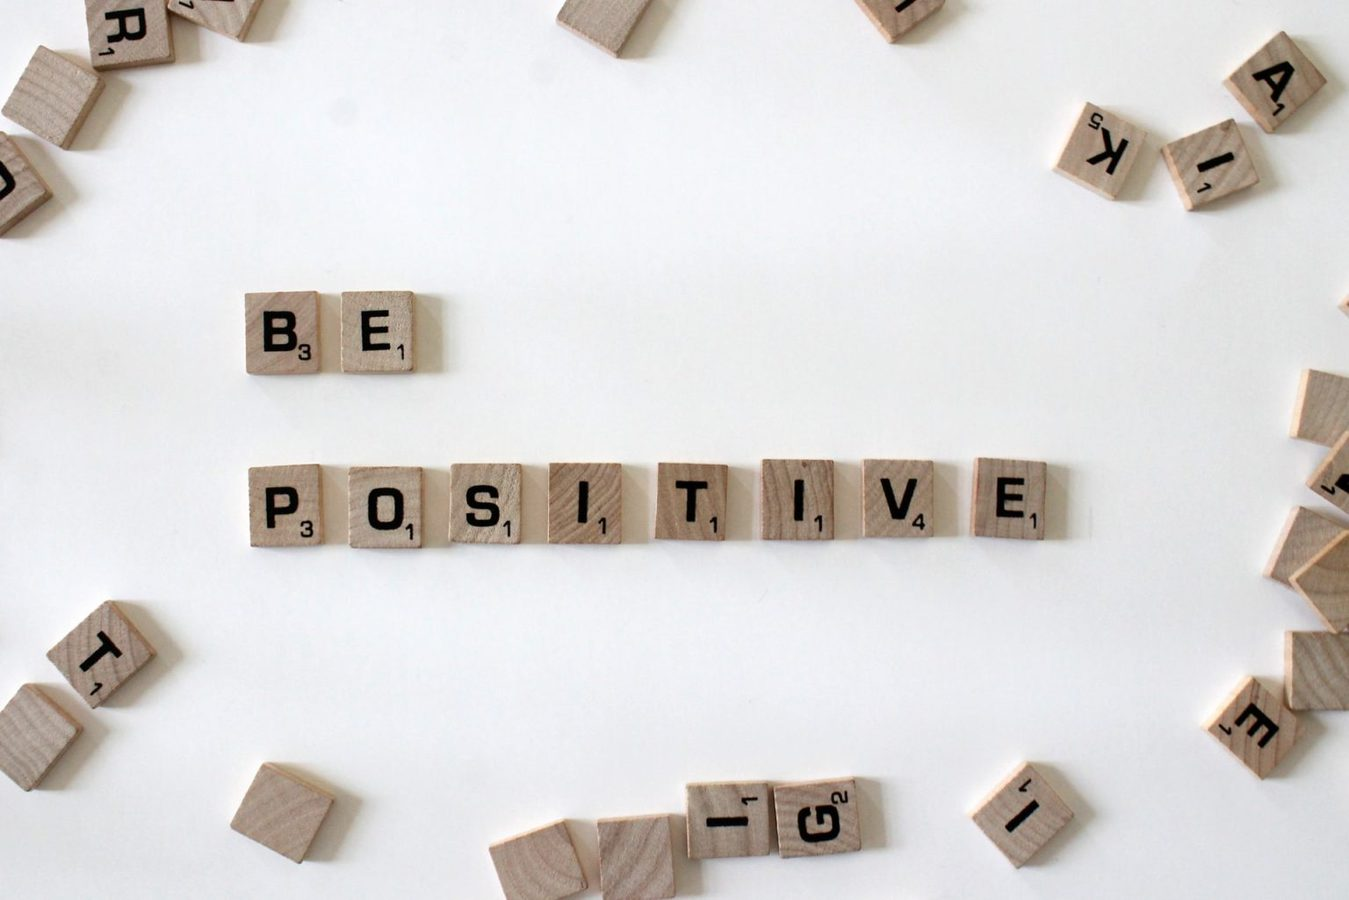 Wooden blocks spelling out be positive